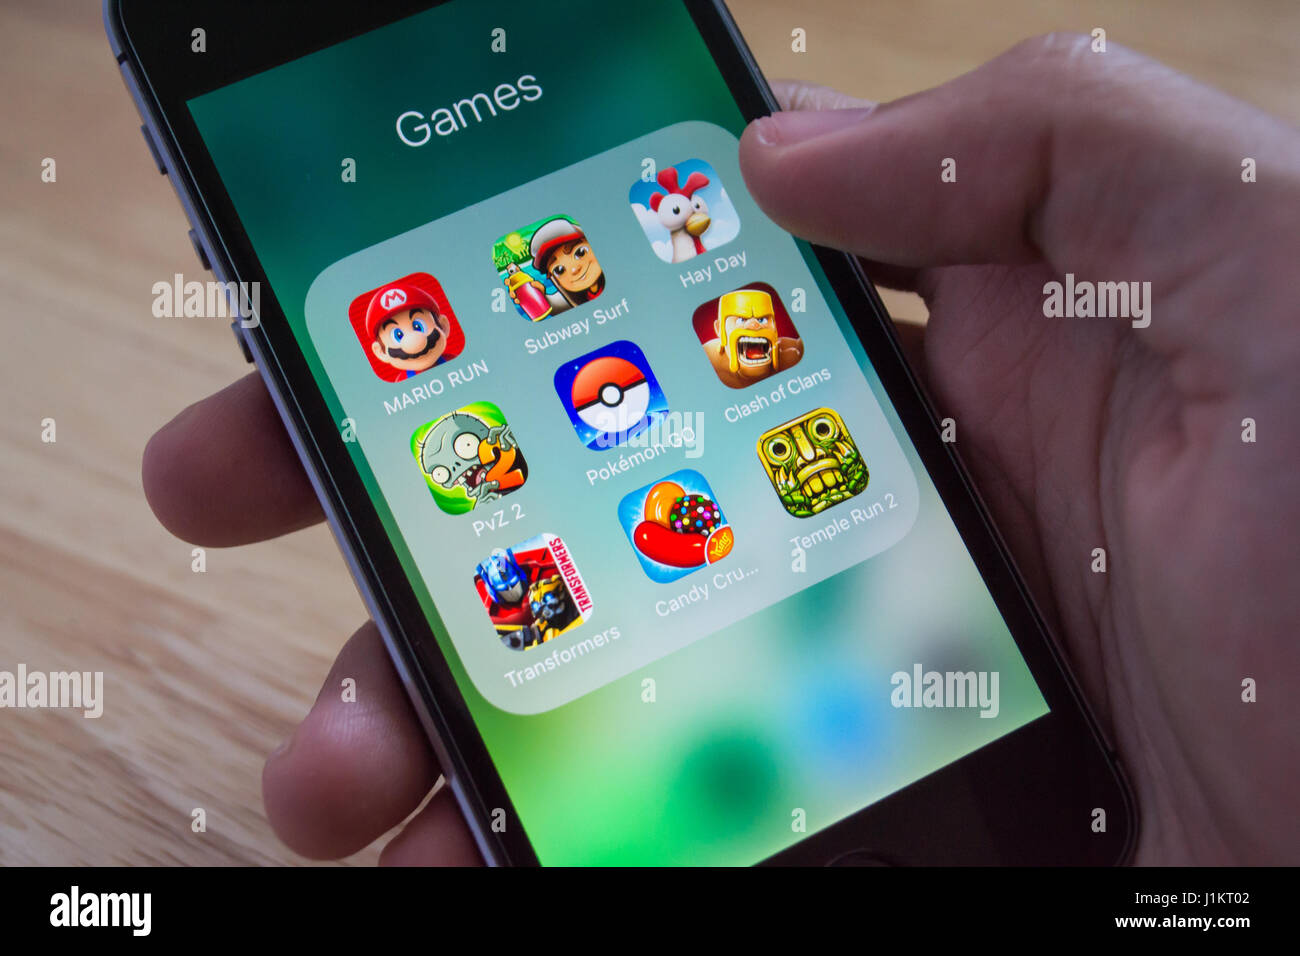 Candy Crush Game Screen Stock Photos & Candy Crush Game Screen Stock